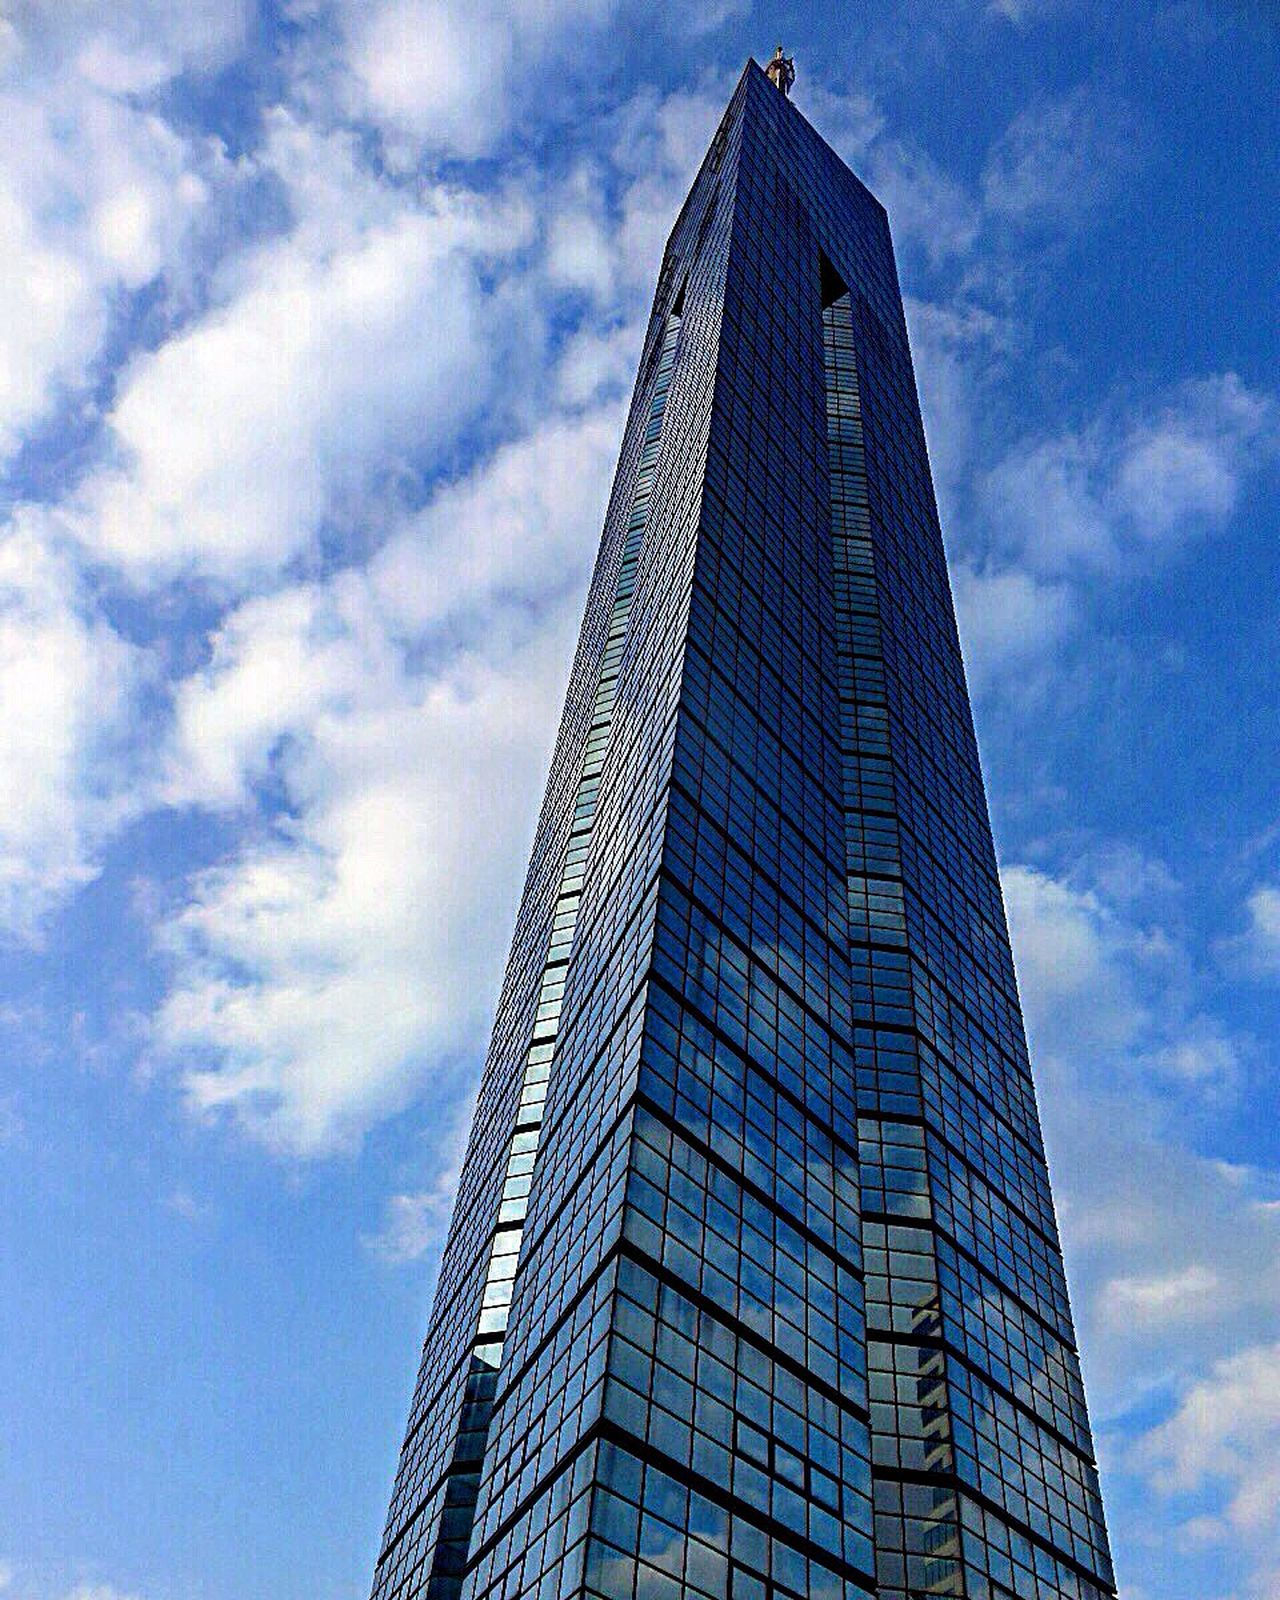 Tower Fukuoka Fukuoka,Japan Fukuoka-shi Fukuokatower Arcteture Sky Sky_collection Clouds And Sky Sky And Clouds Sky_collection Blue Sky Skylovers